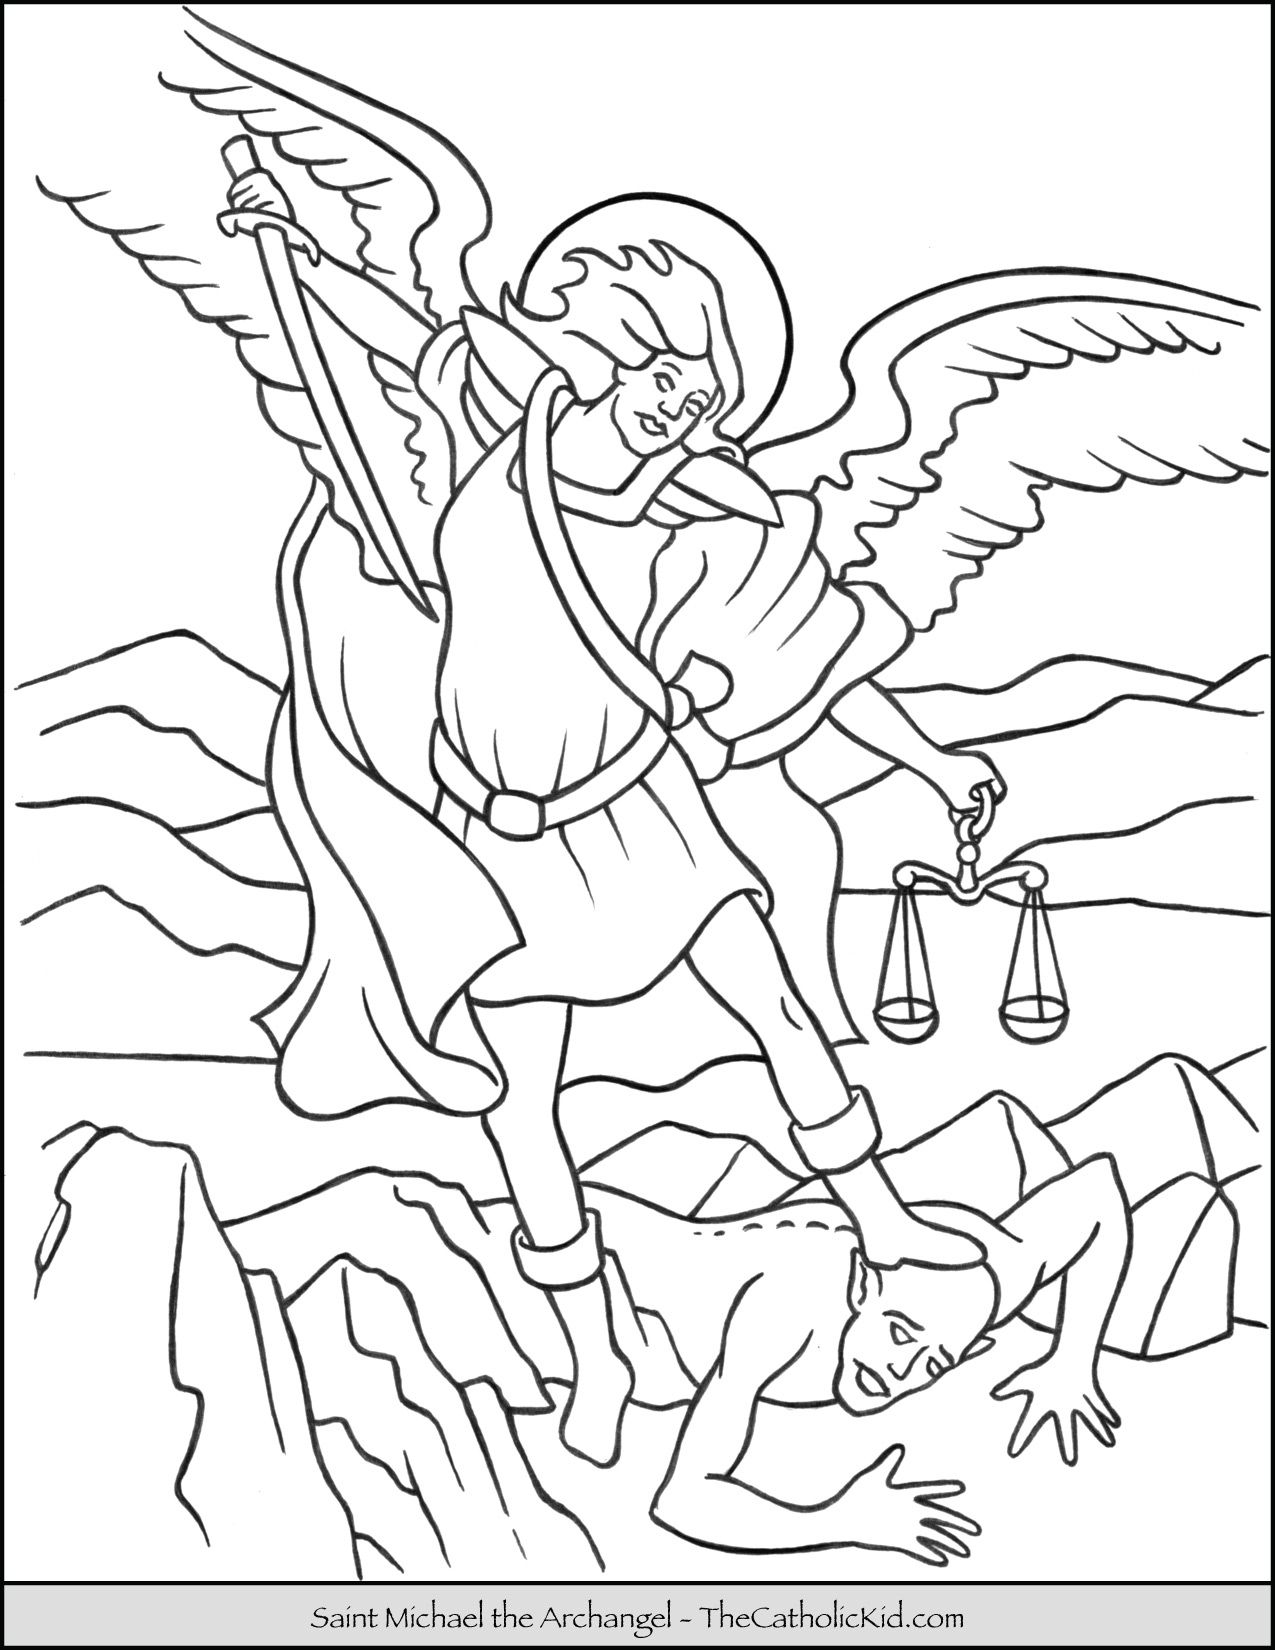 Saint Michael Archangel Coloring Page Thecatholickid Com Angel